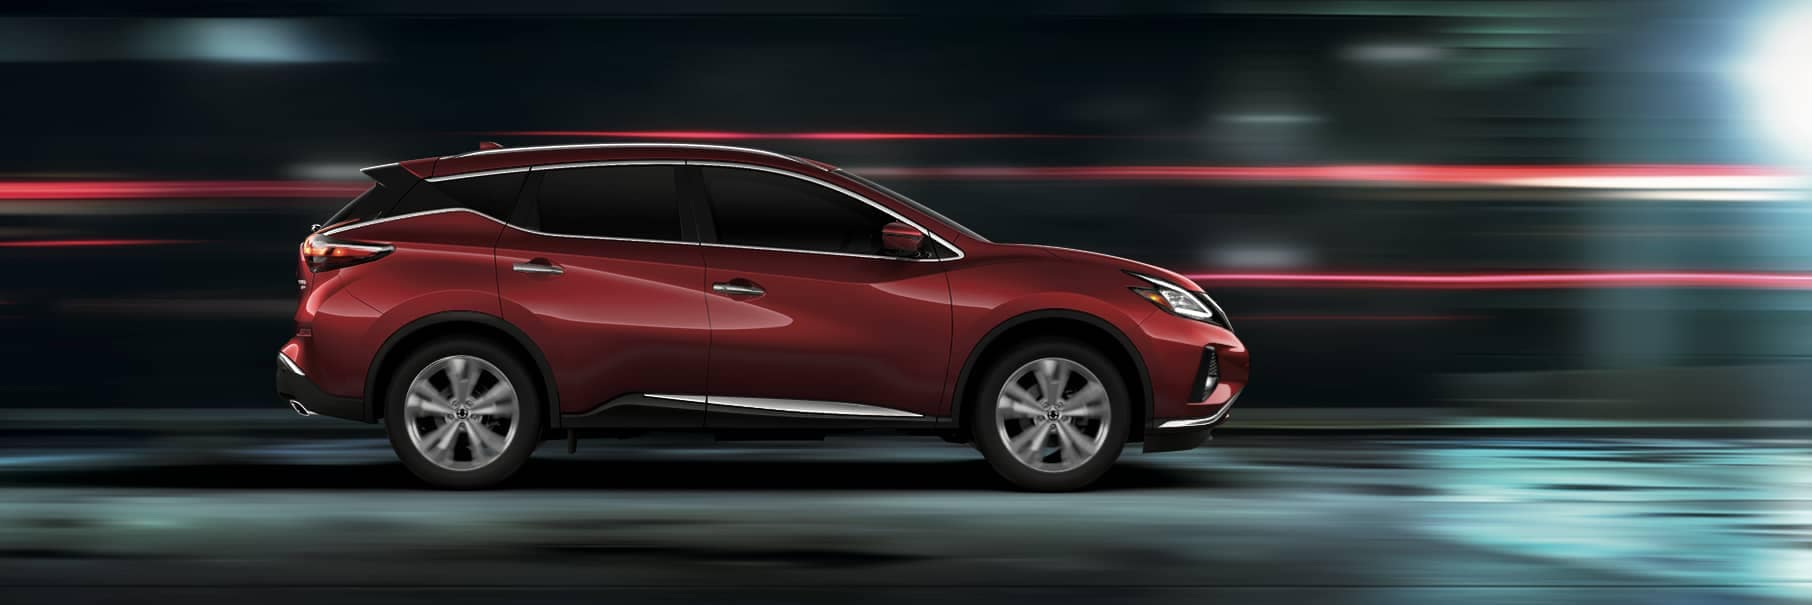 2020 Red Murano in a tunnel, sideview